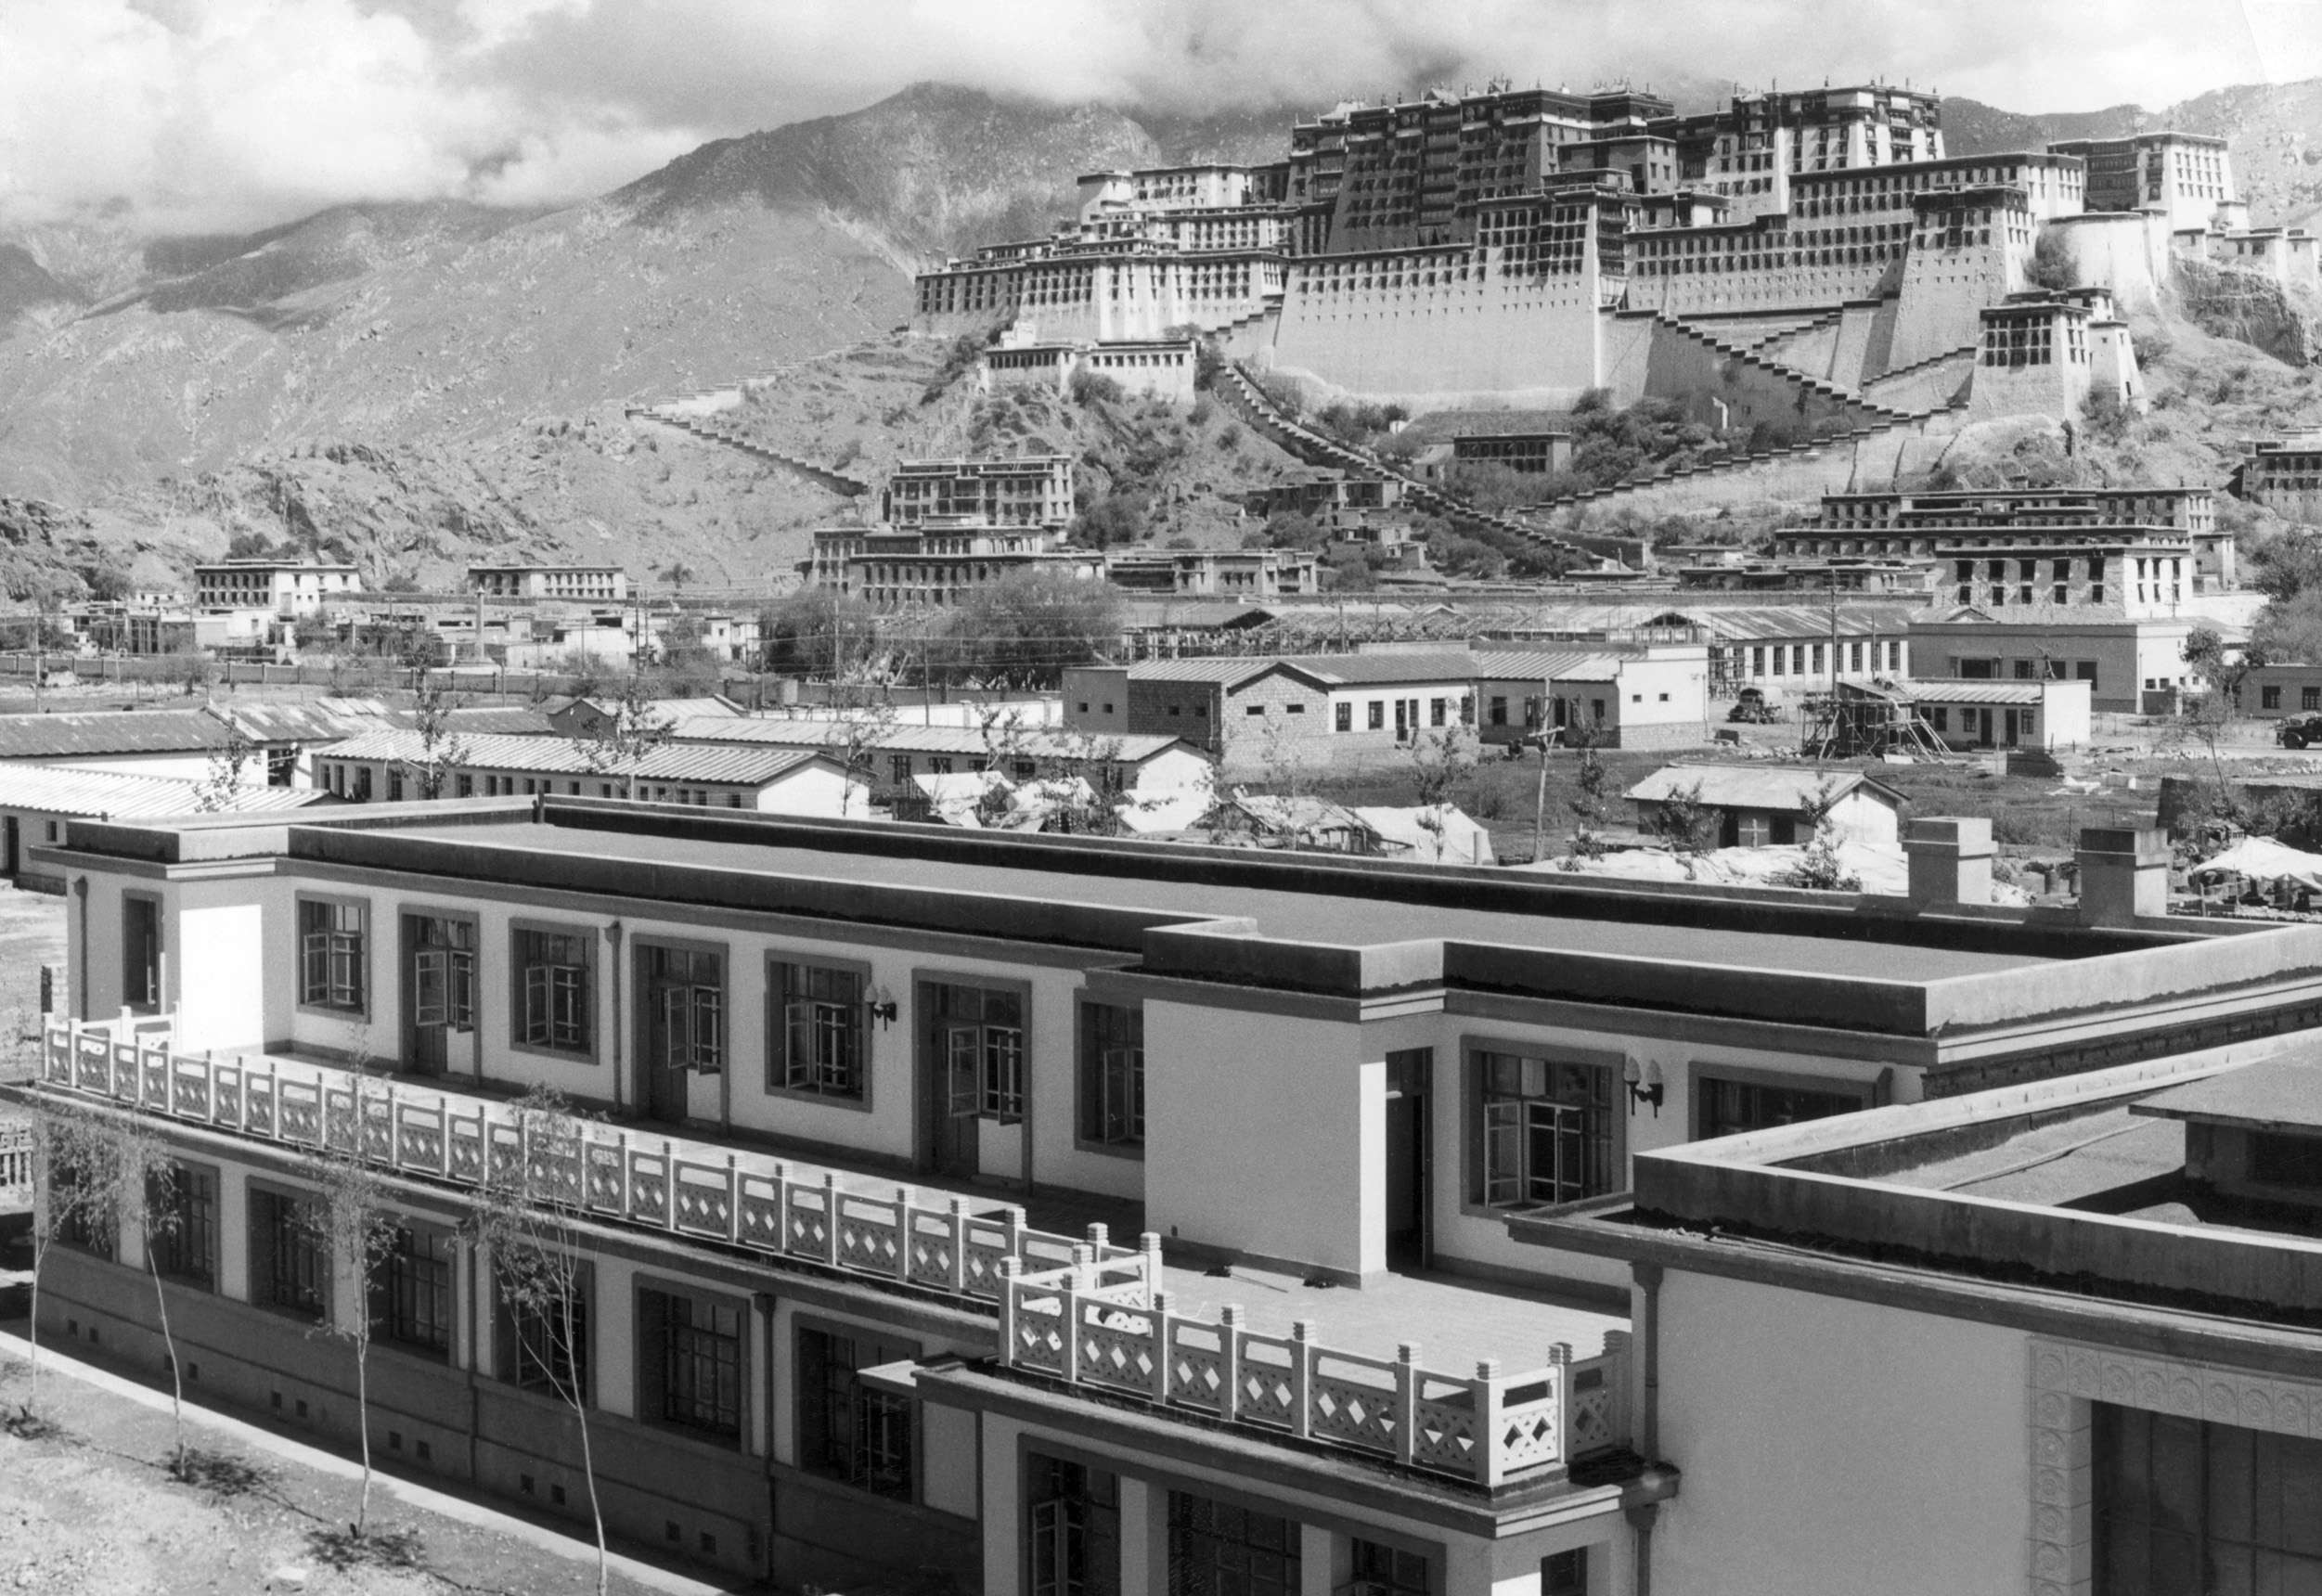 """Slide 19 of 55: Lhasa: A picture released by Chinese official news agency in August 1965 with a caption saying: """"New buildings are going up at the foot of the Potala Palace (in the background, the former home of the Dalai Lama) in Lhasa. The total floor space of new housing built in Lhasa since liberation 15 years ago has more than doubled the floor space of pre-liberation days"""". In March 1959, there was an unsuccessful armed uprising by Tibetans against Chinese rule. As a result, the Dalai Lama, the head of Tibet's Buddhist clergy and thus the region's spiritual leader, fled with some 100,000 supporters to northern India, where a government-in-exile was established. The Chinese ended the the former dominance of the lamas (Buddhist monks) and destroyed many monasteries. Tibet (Xizang), occupied in 1950 by Chinese Communist forces, became an """"Autonomous Region"""" of China in September 1965, but the majority of Tibetans have continued to regard the Dalai Lama as their """"god-king"""" and to resent the Chinese presence, leading to intermittent unrest. (Photo credit should read JU SHUI-CHU/AFP/Getty Images)"""